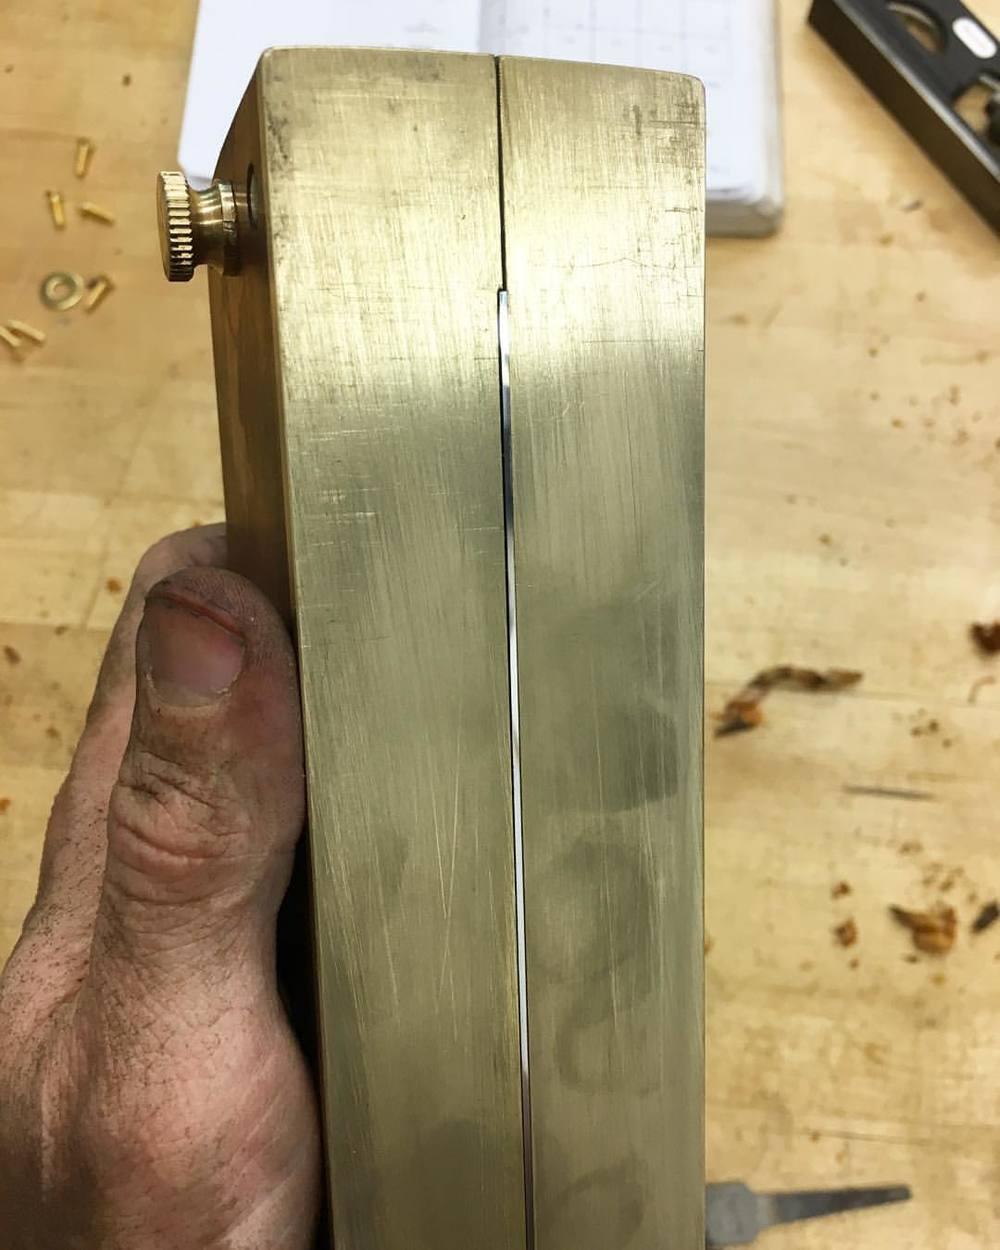 Very fancily-honed scraper edge. This just came off the 8000-grit stone. #makingthethingthatmakesthething #scrapersneedlovetoo #letsmakeawatchbox